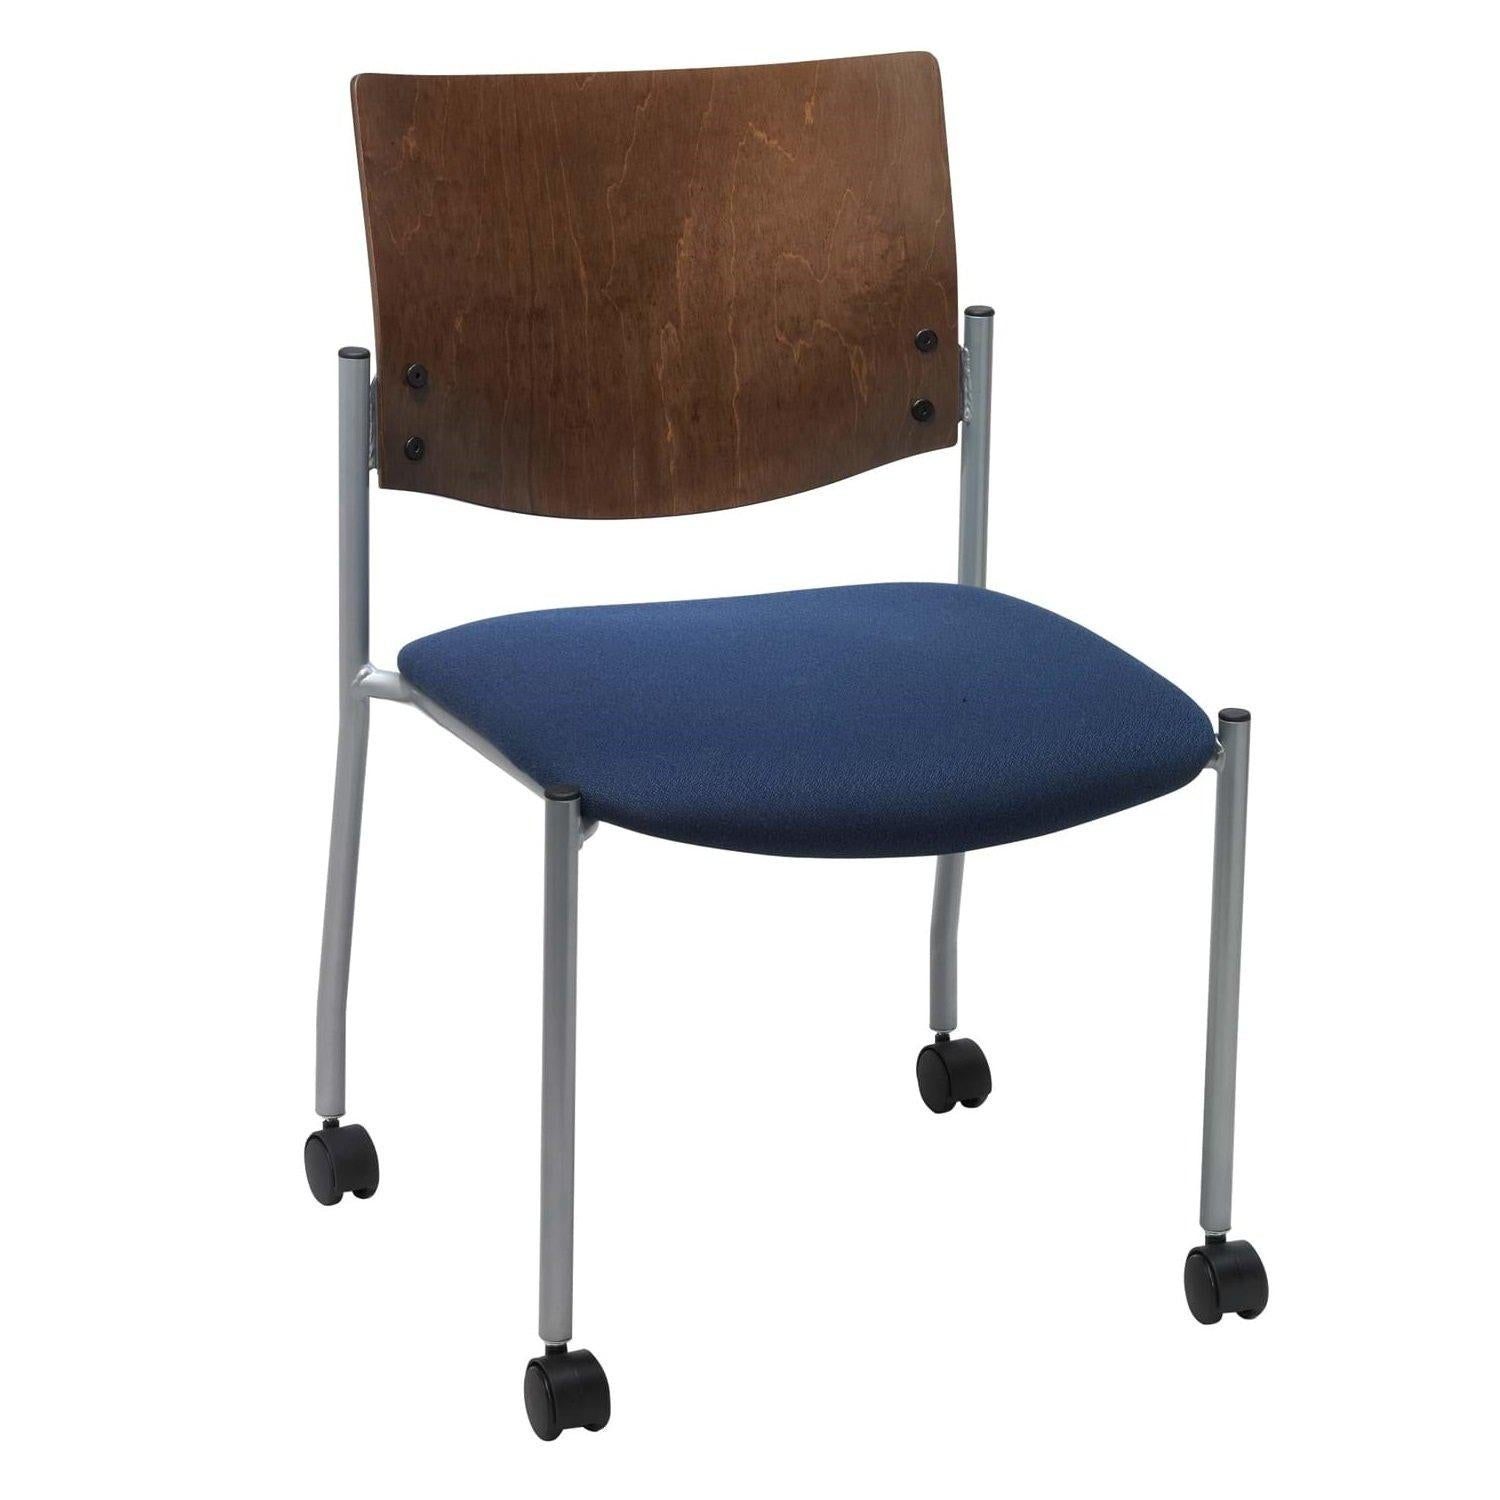 Evolve Chair with Casters, Wood Back, Padded Seat with Fabric Upholstery